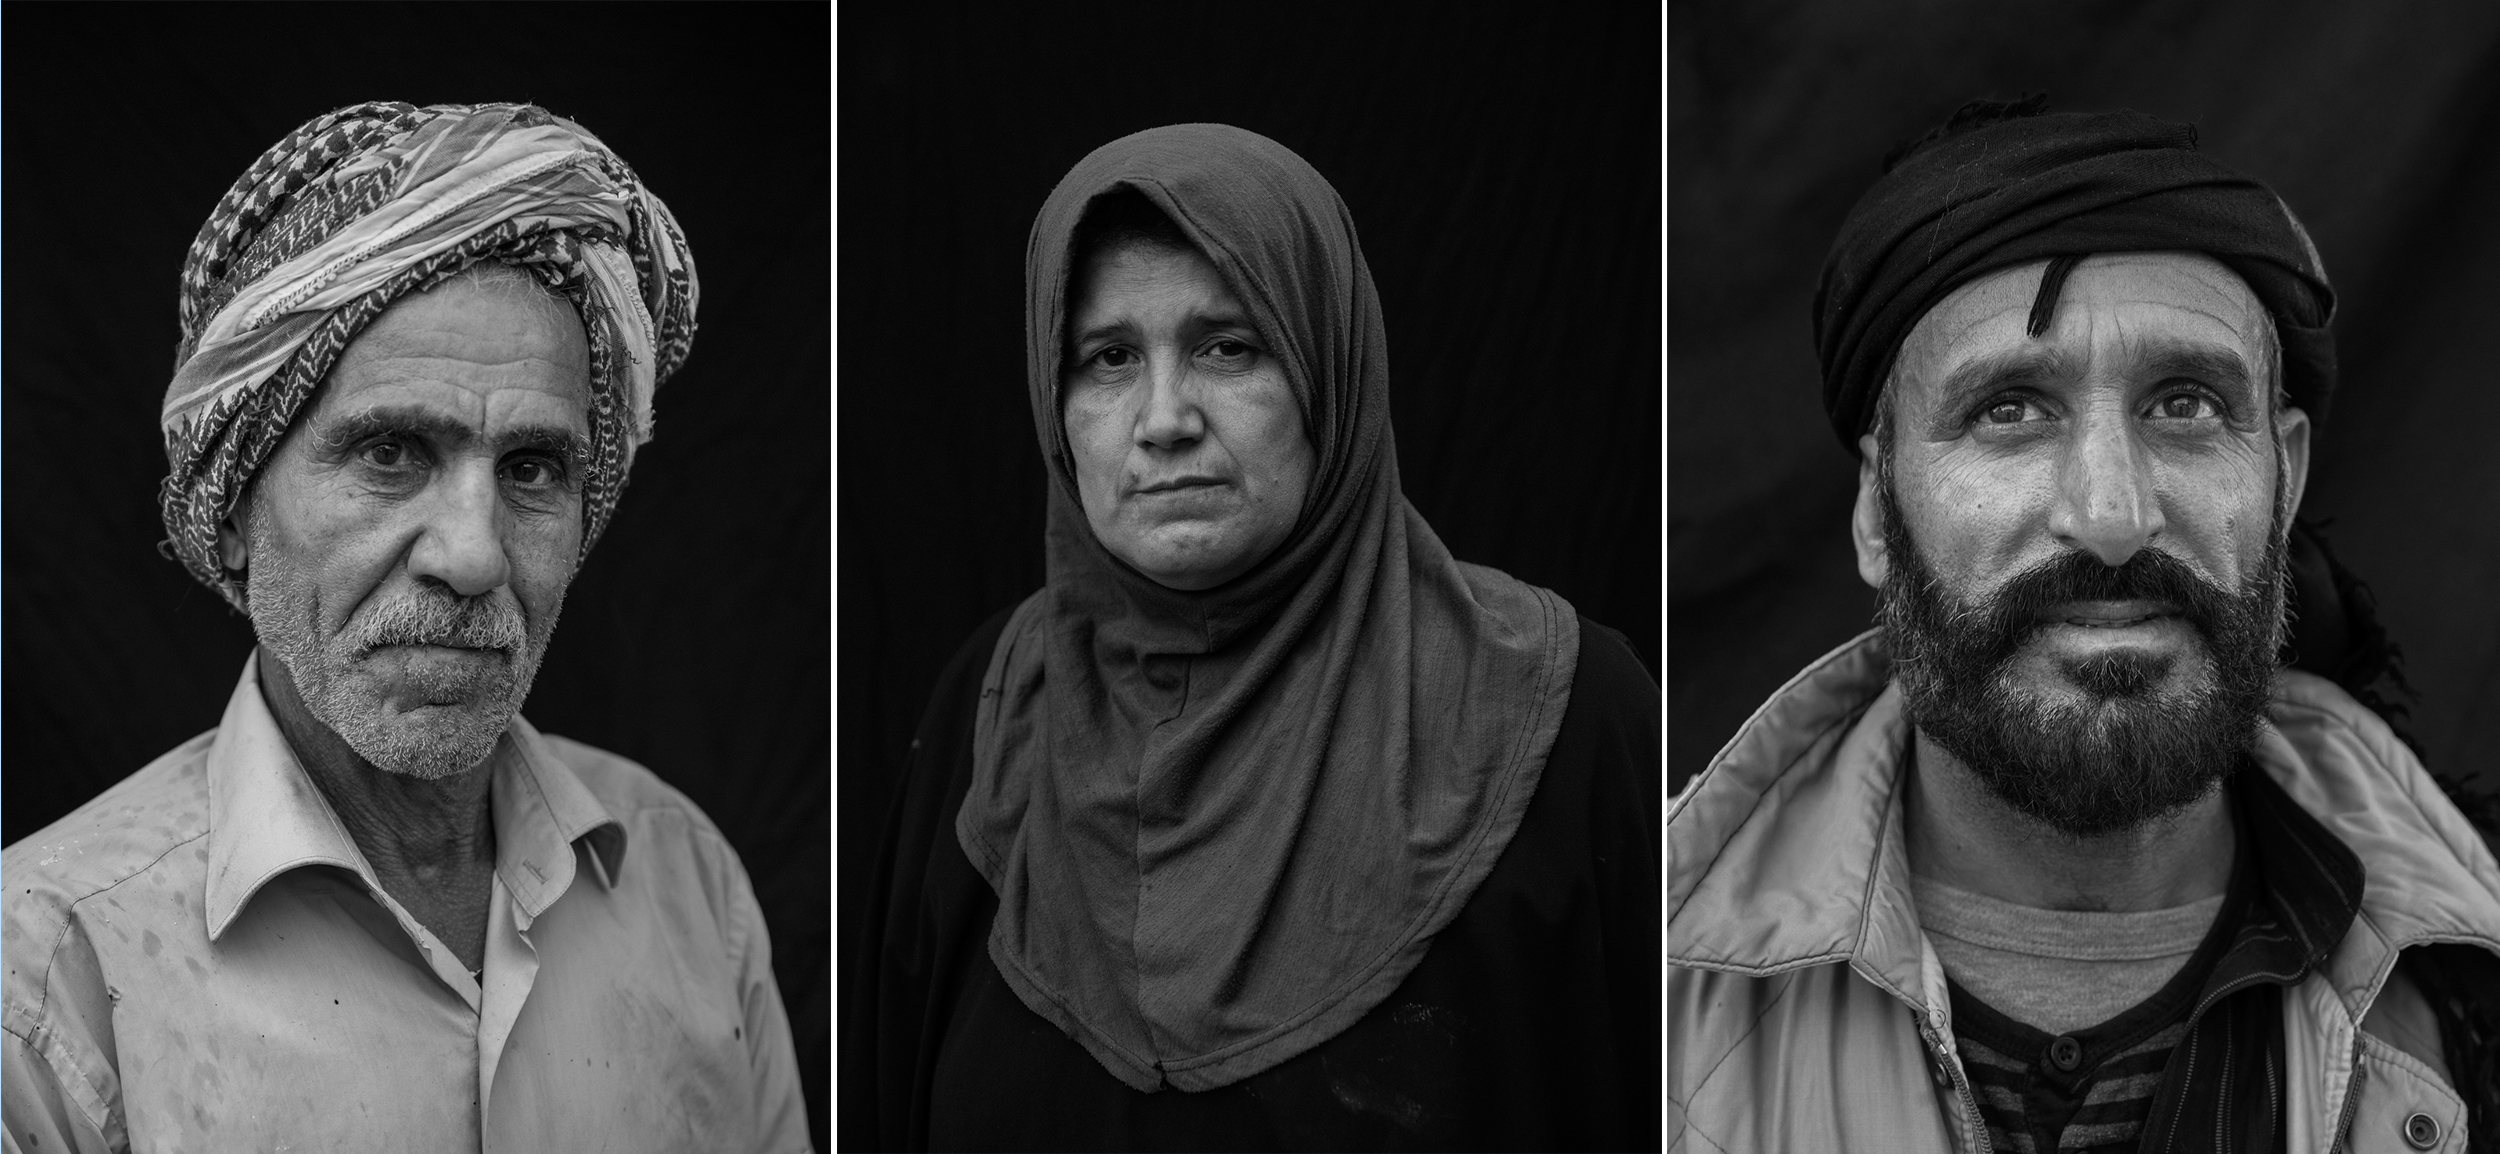 Left: Welder Hussein Ali Mohammed, 63. Four of his six children were killed in the battle against ISIS. Middle: Wafa Thanoon, 51, a religious teacher, who was injured by blasts on three different occasions. Right: Abdullah Hamud, 42, lives in an abandoned apartment with his family in Raqqa. Hamud fled to Raqqa six months ago to look for work after his home in Kasra was destroyed by an airstrike.